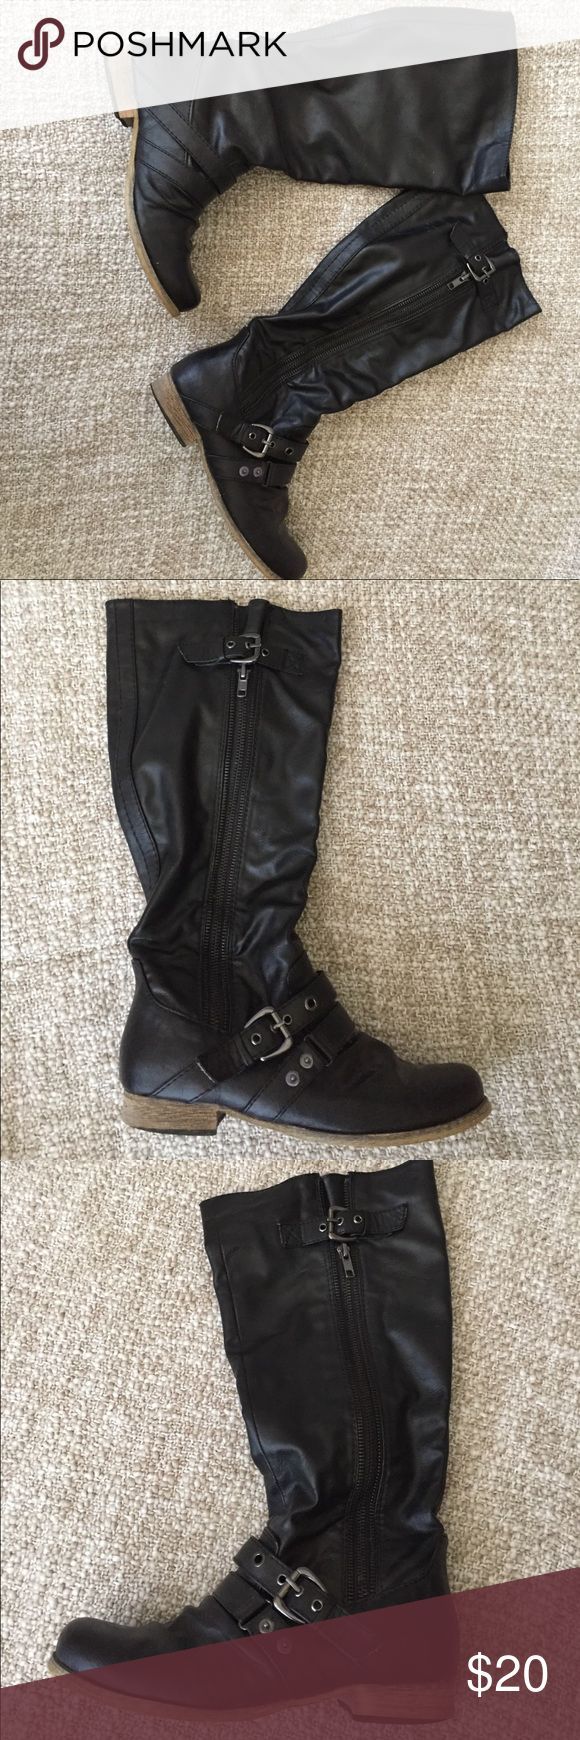 Black Carlos Santana boots Fall just below the knee. True to size. Flexible with price. Carlos Santana Shoes Winter & Rain Boots